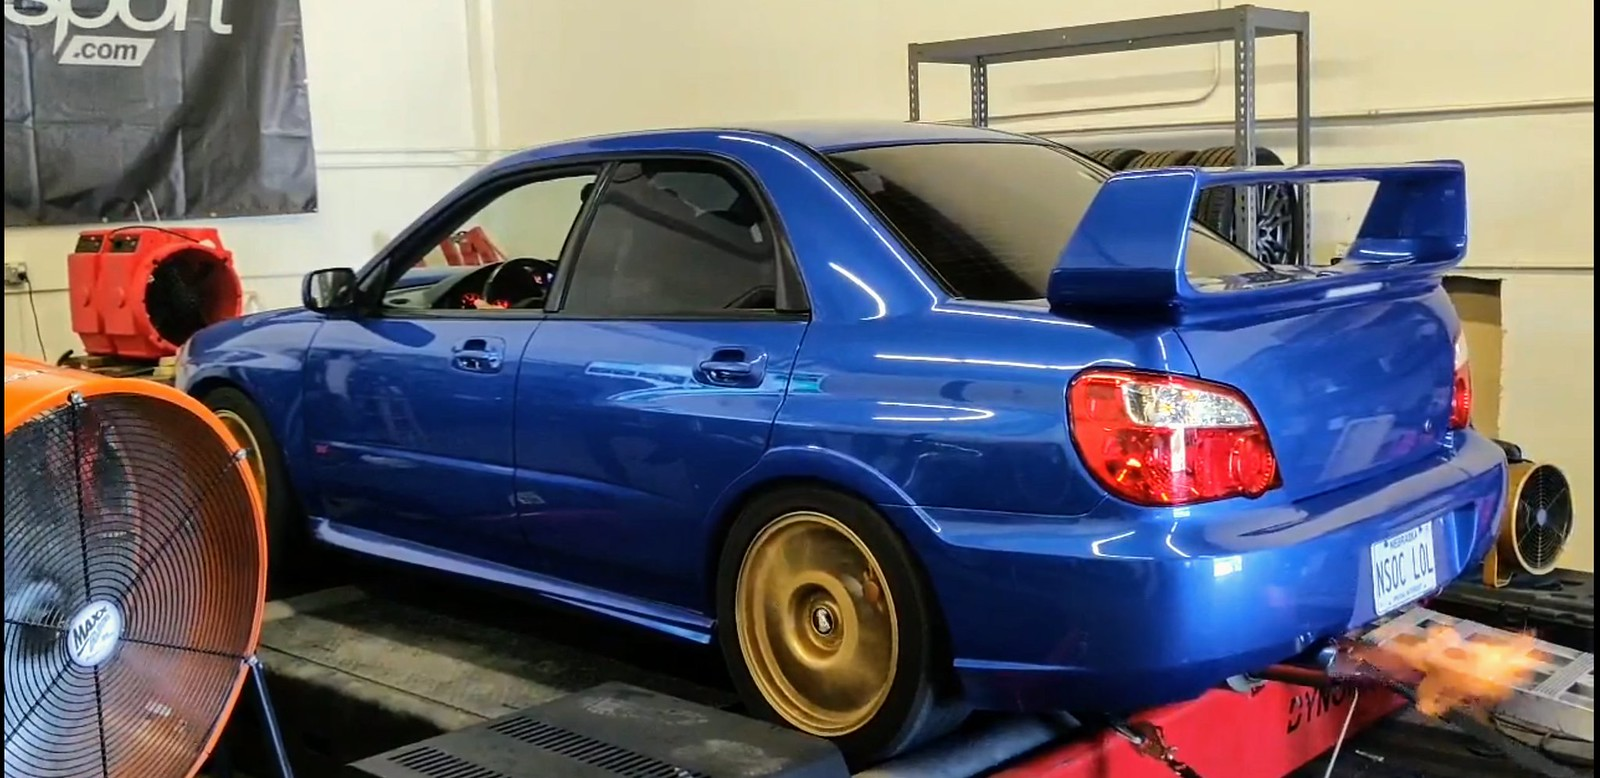 yamahaSHO's Street Car - Officially For Sale!-sti-dyno-flames-jpg